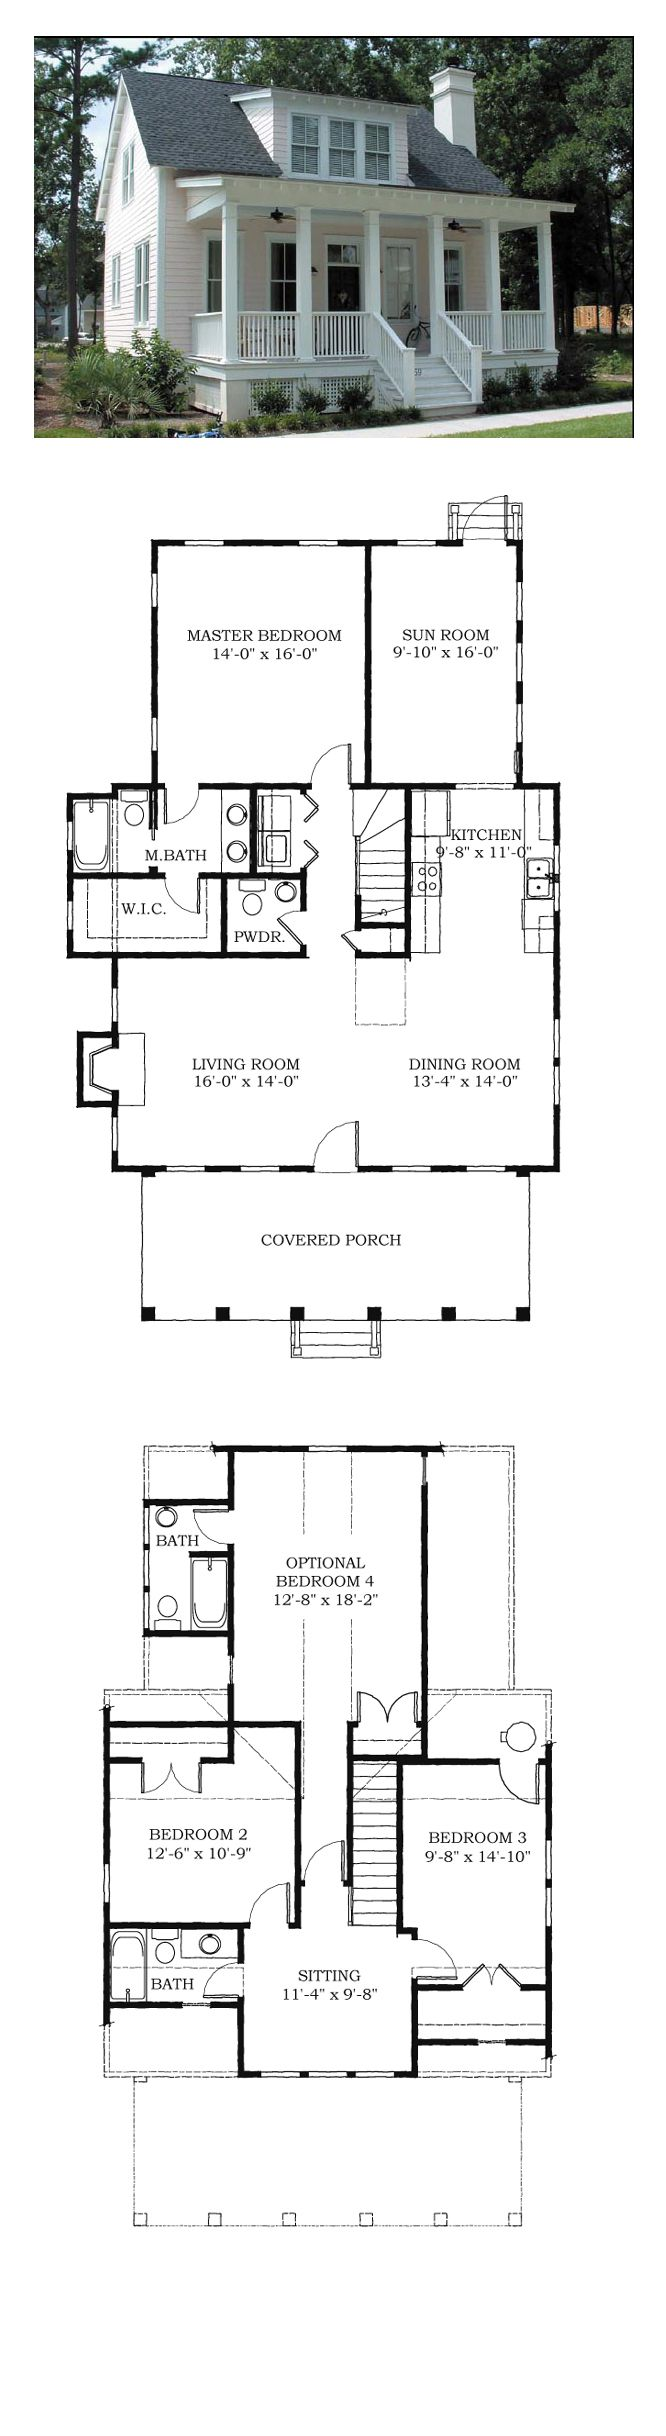 COOL House Plan ID Total Living Area 1783 Sq 4 Bedrooms And Bathrooms By Dakota Smith